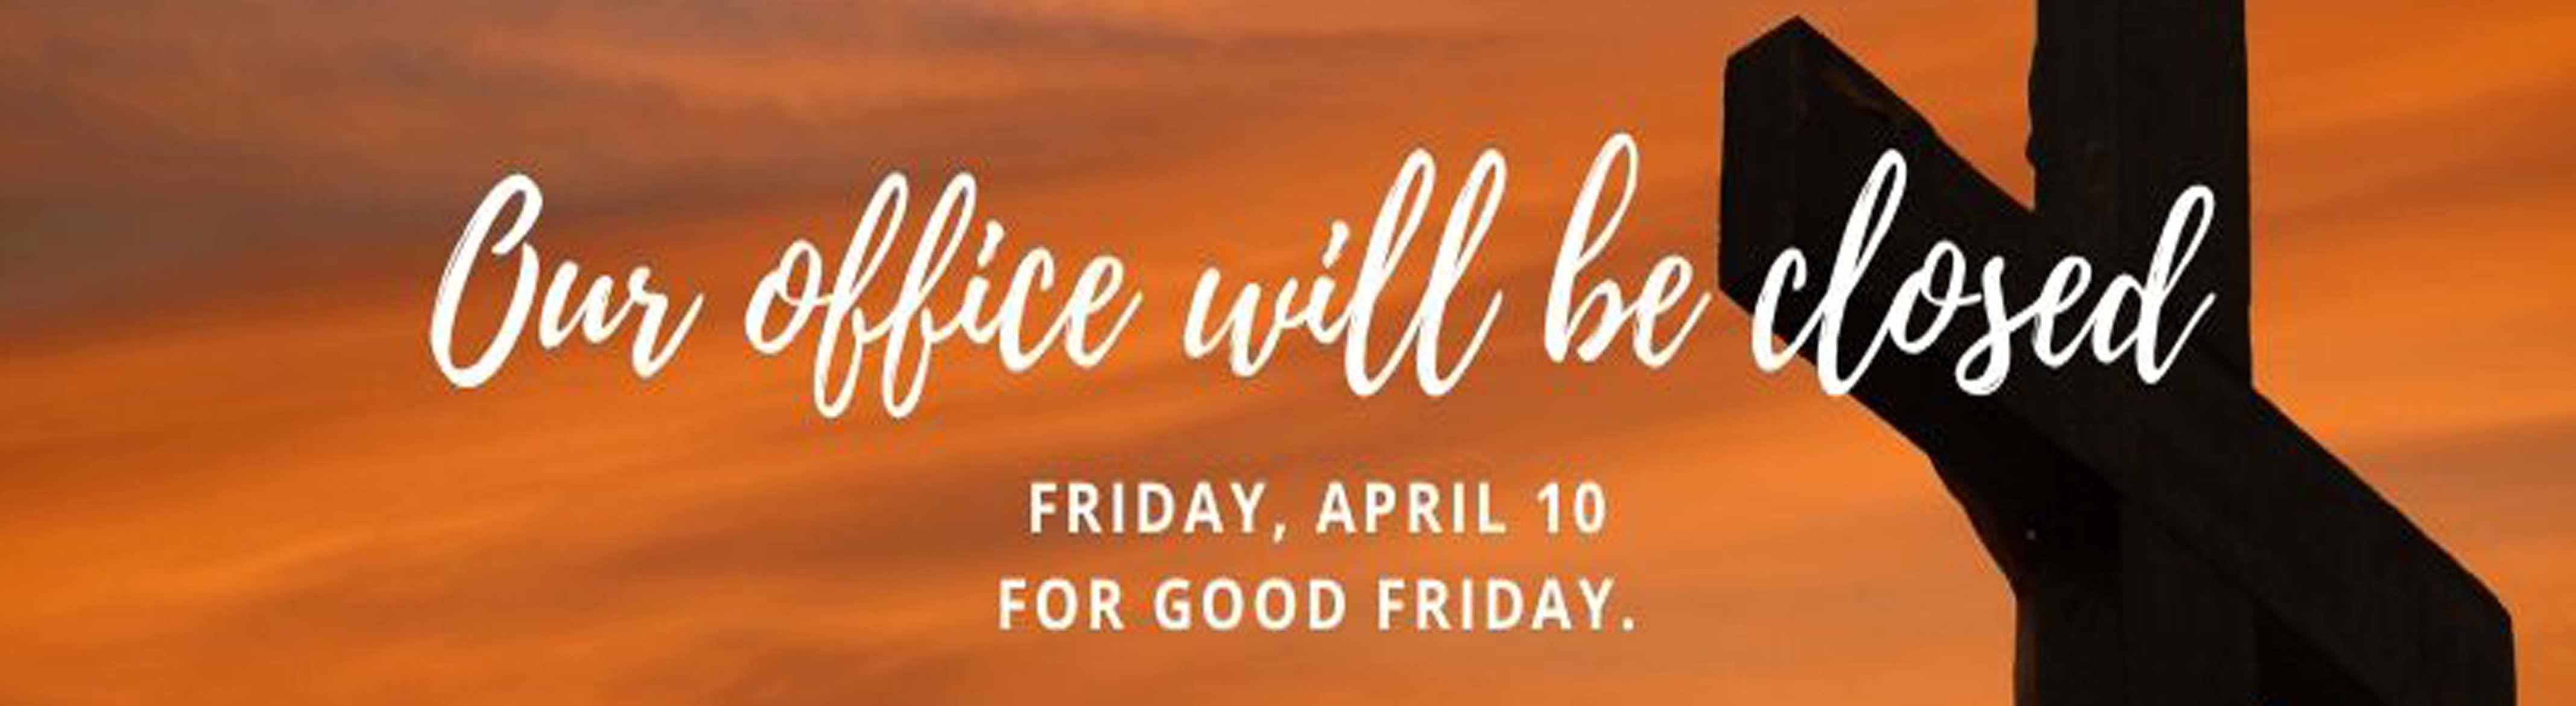 Our office will be closed Friday, April 10 for Good Friday